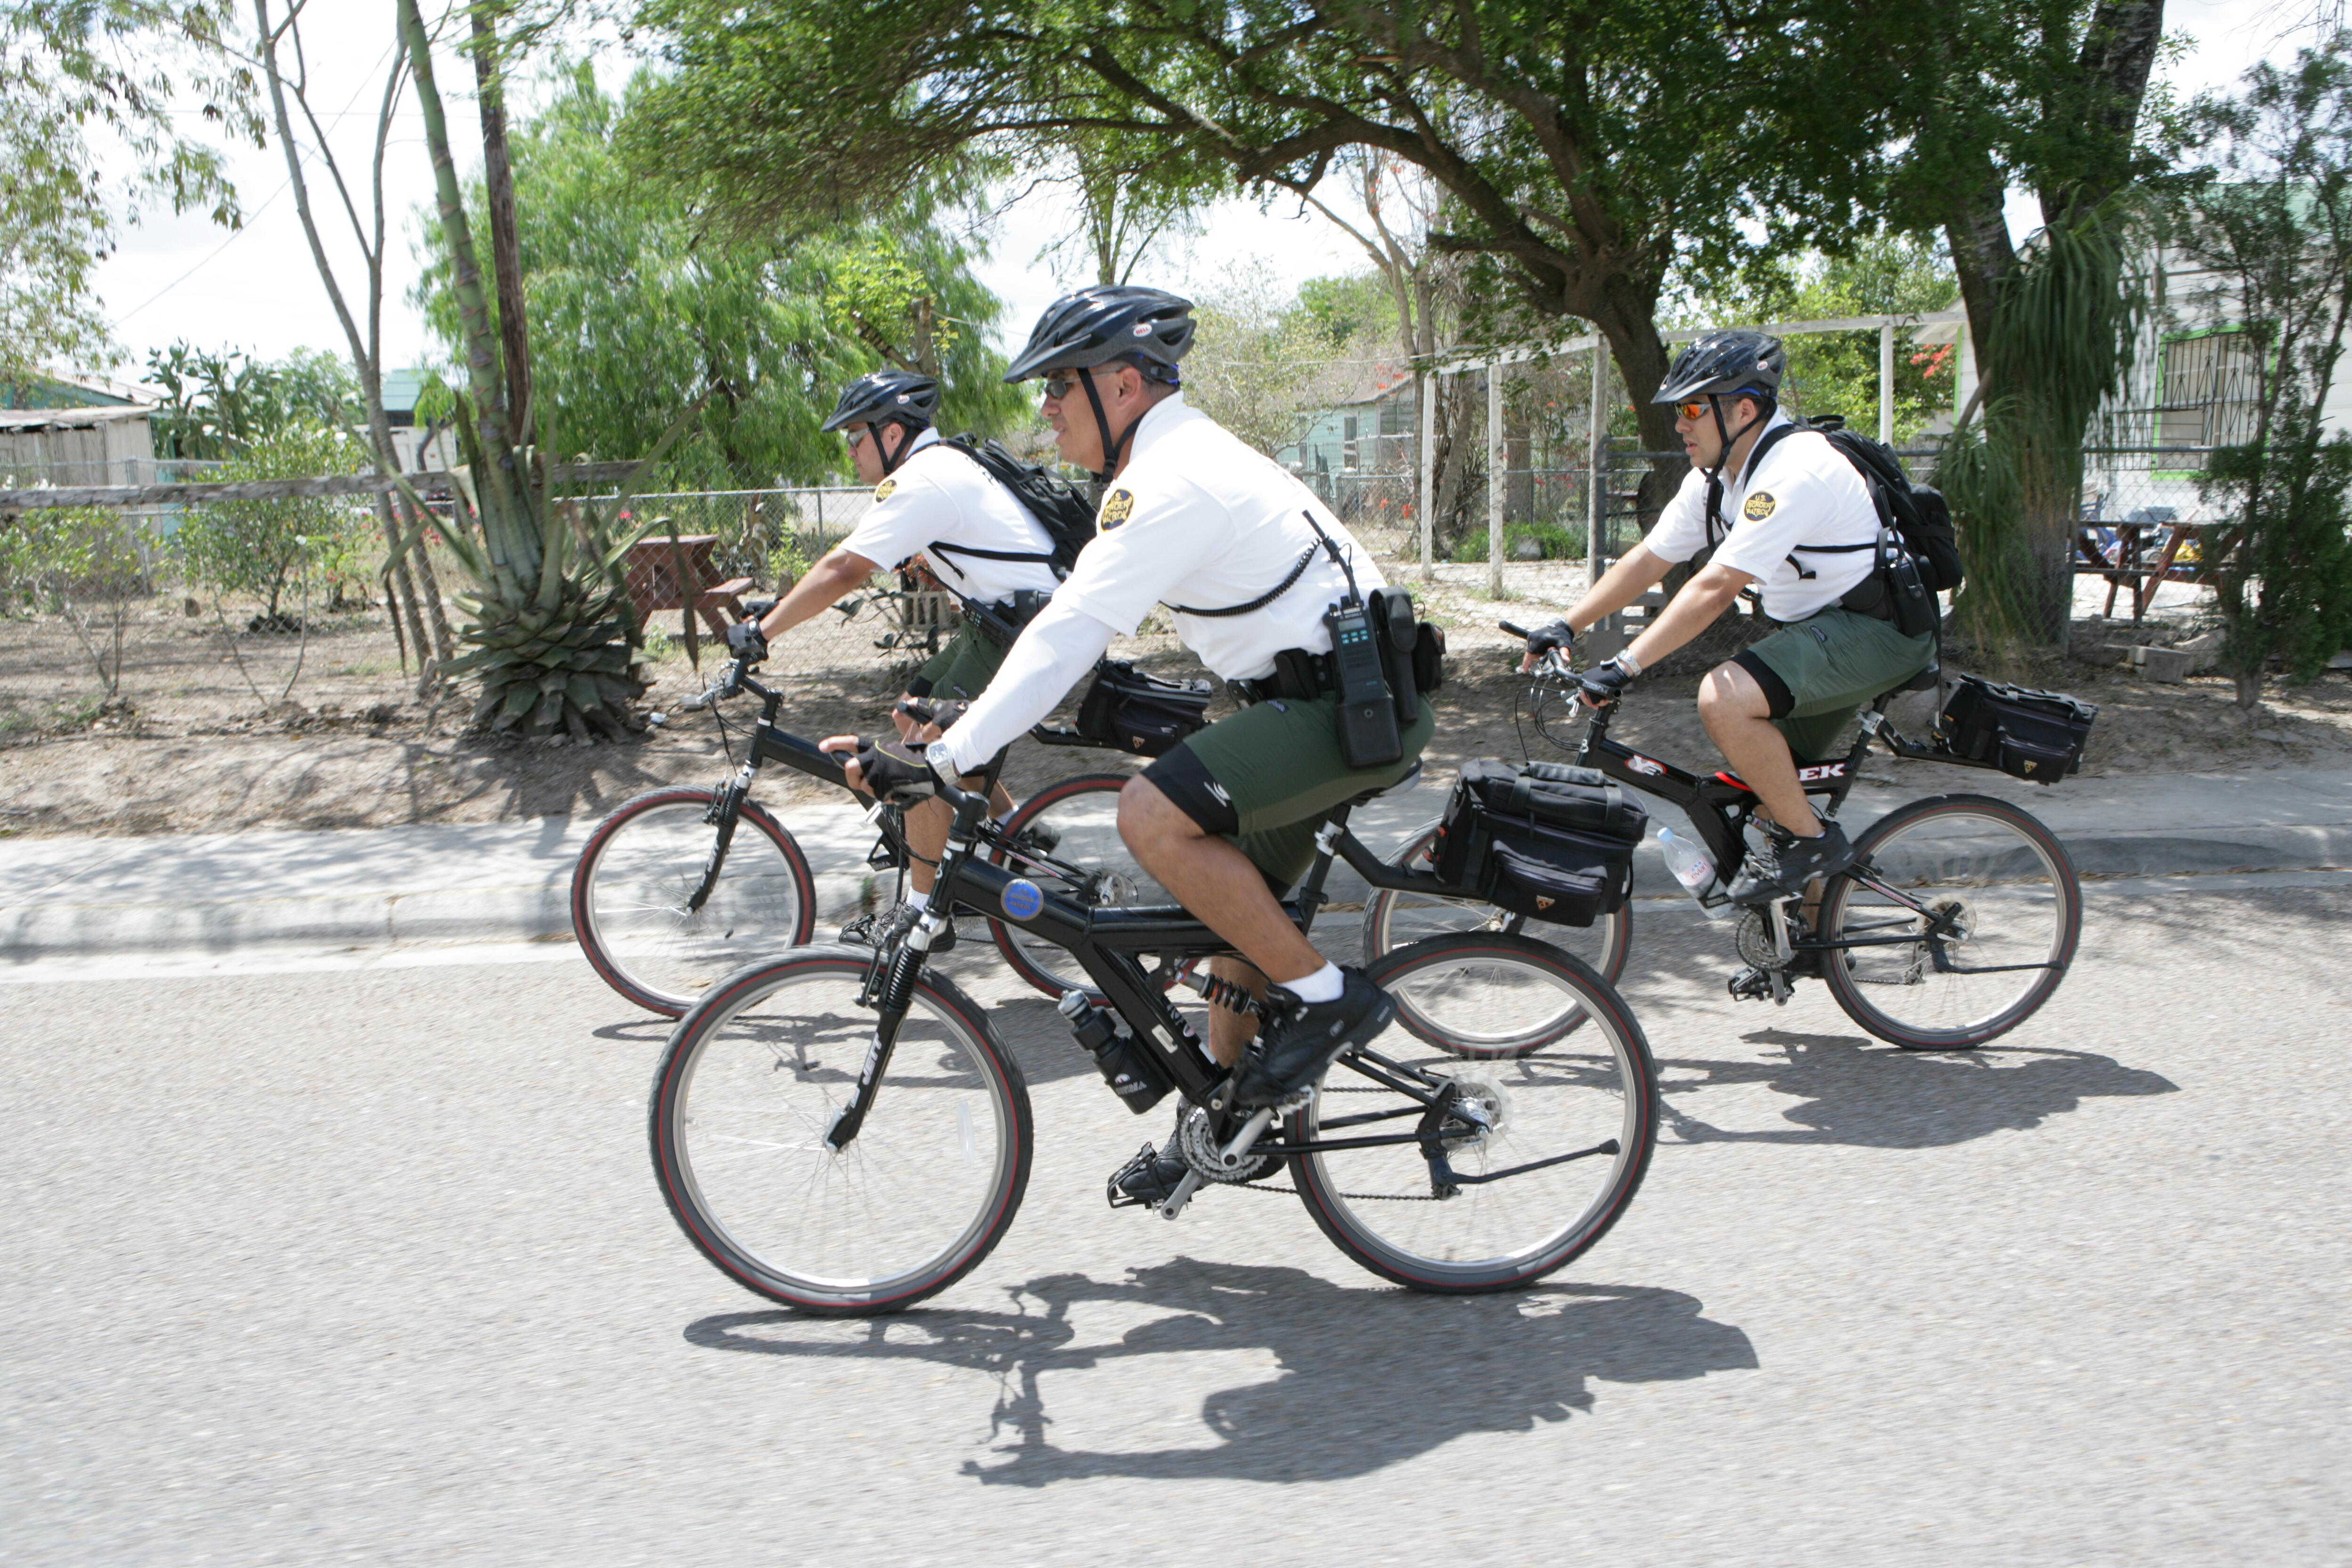 United States Border Patrol bicycle units patrol the city of Brownsville, Texas looking for illegal Immigrants.